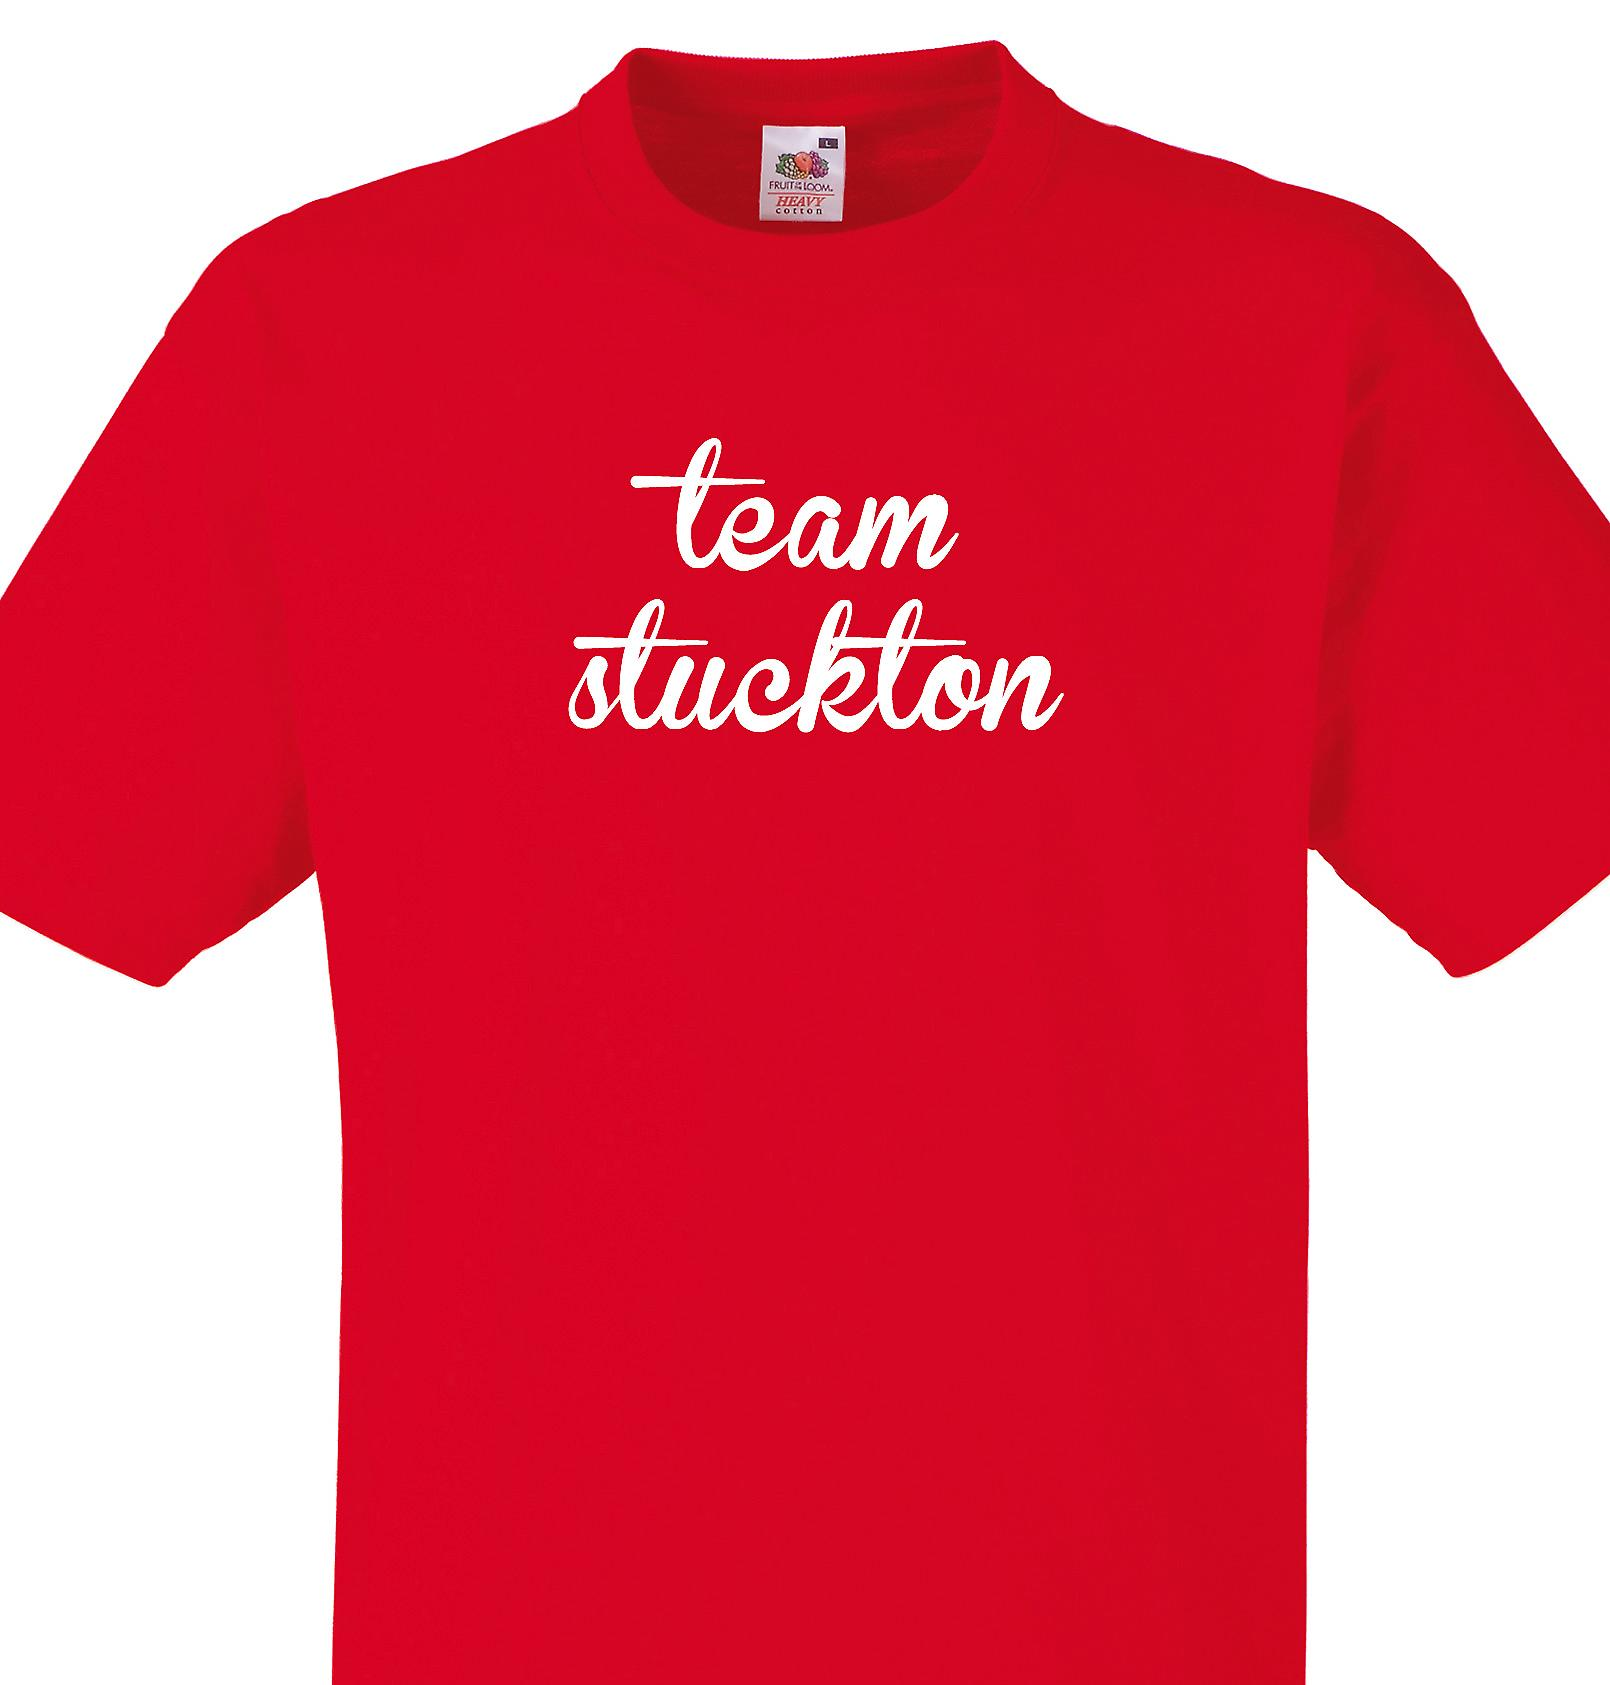 Team Stuckton Red T shirt